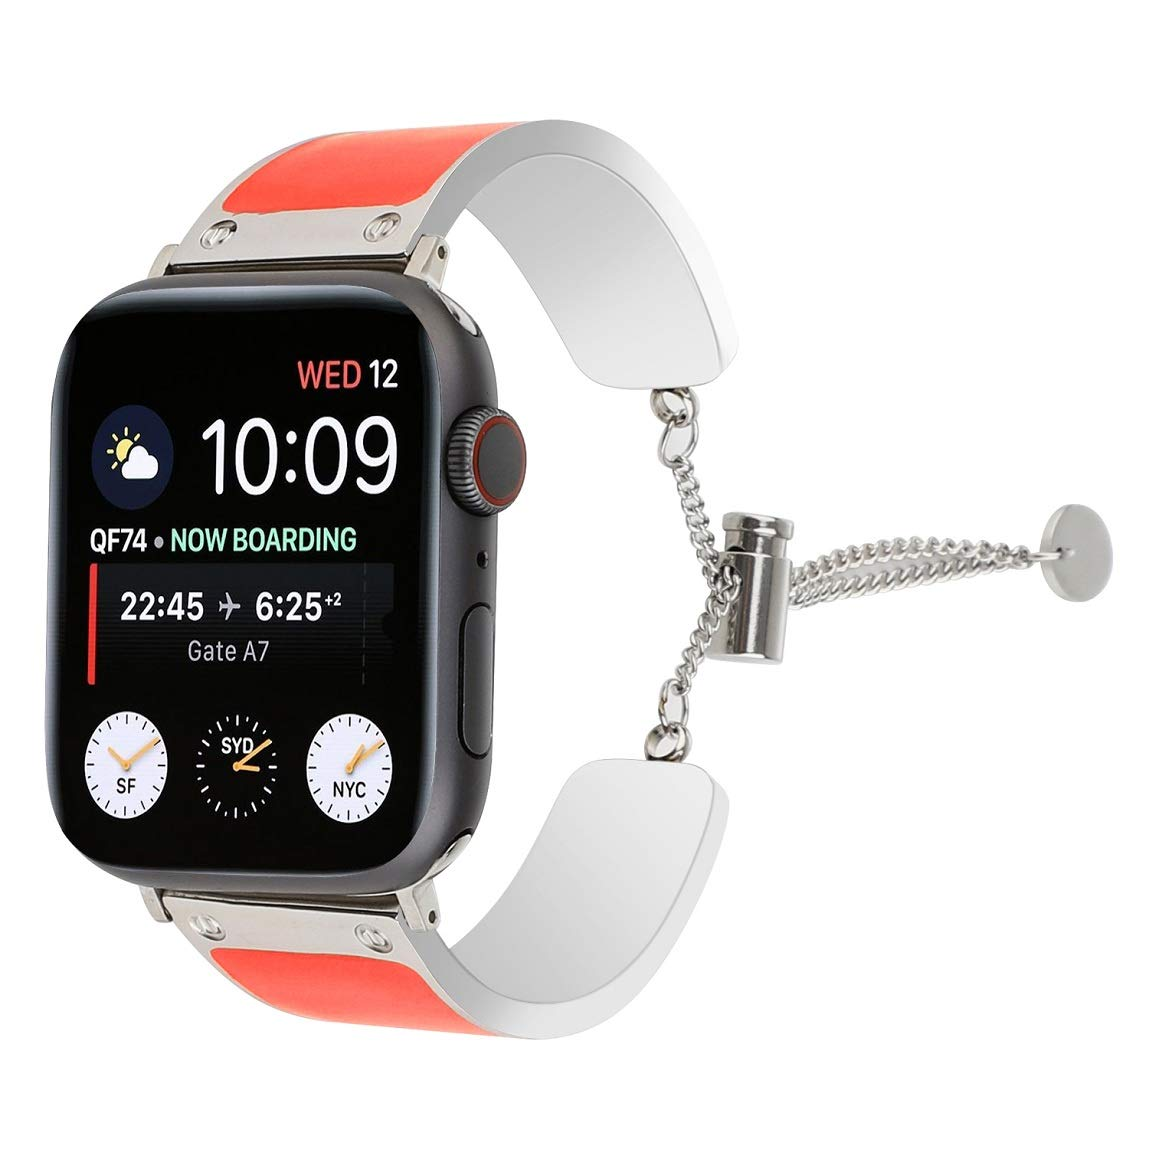 Juzzhou Bands for Apple Watch iWatch Series 1 2 3 4 Edition Wrist Strap Stainless Steel Replacement Wriststrap Wristband Bracelet with Adjustable Buckle for Women Girl Lady Boy Orange red 38mm 40mm by Juzzhou